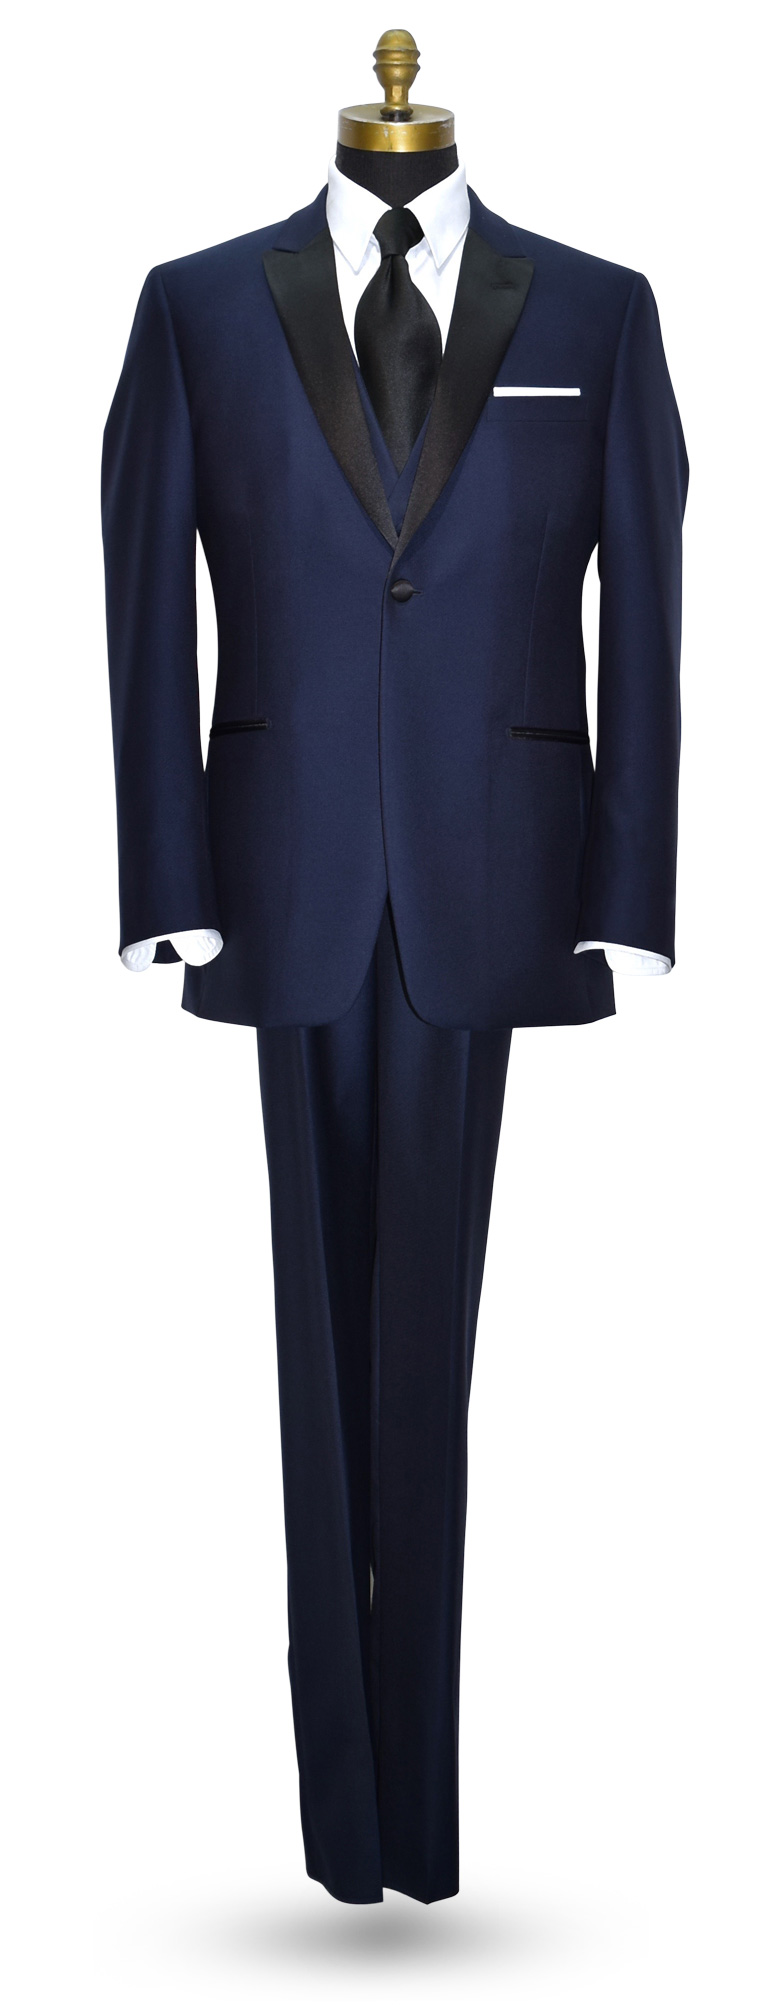 Navy Blue Tuxedo - Coat and Pants Only - Vest Optional